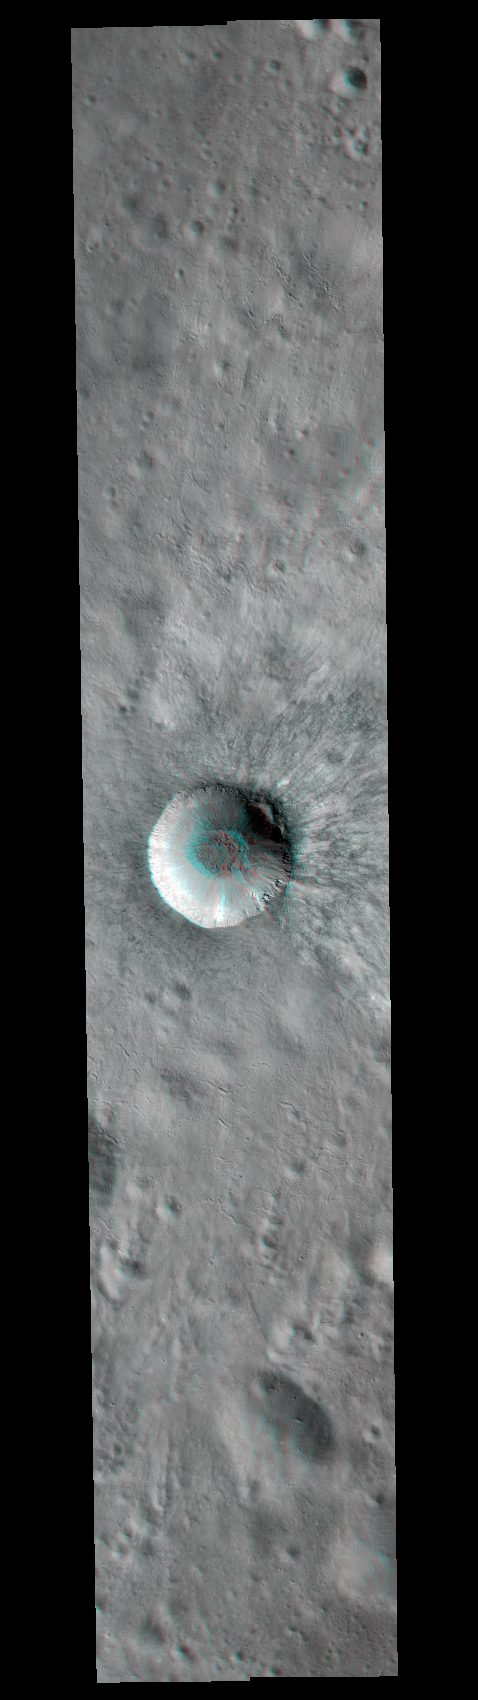 3D anaglyph of Hell Q crater (NASA/GSFC/Arizona State University)